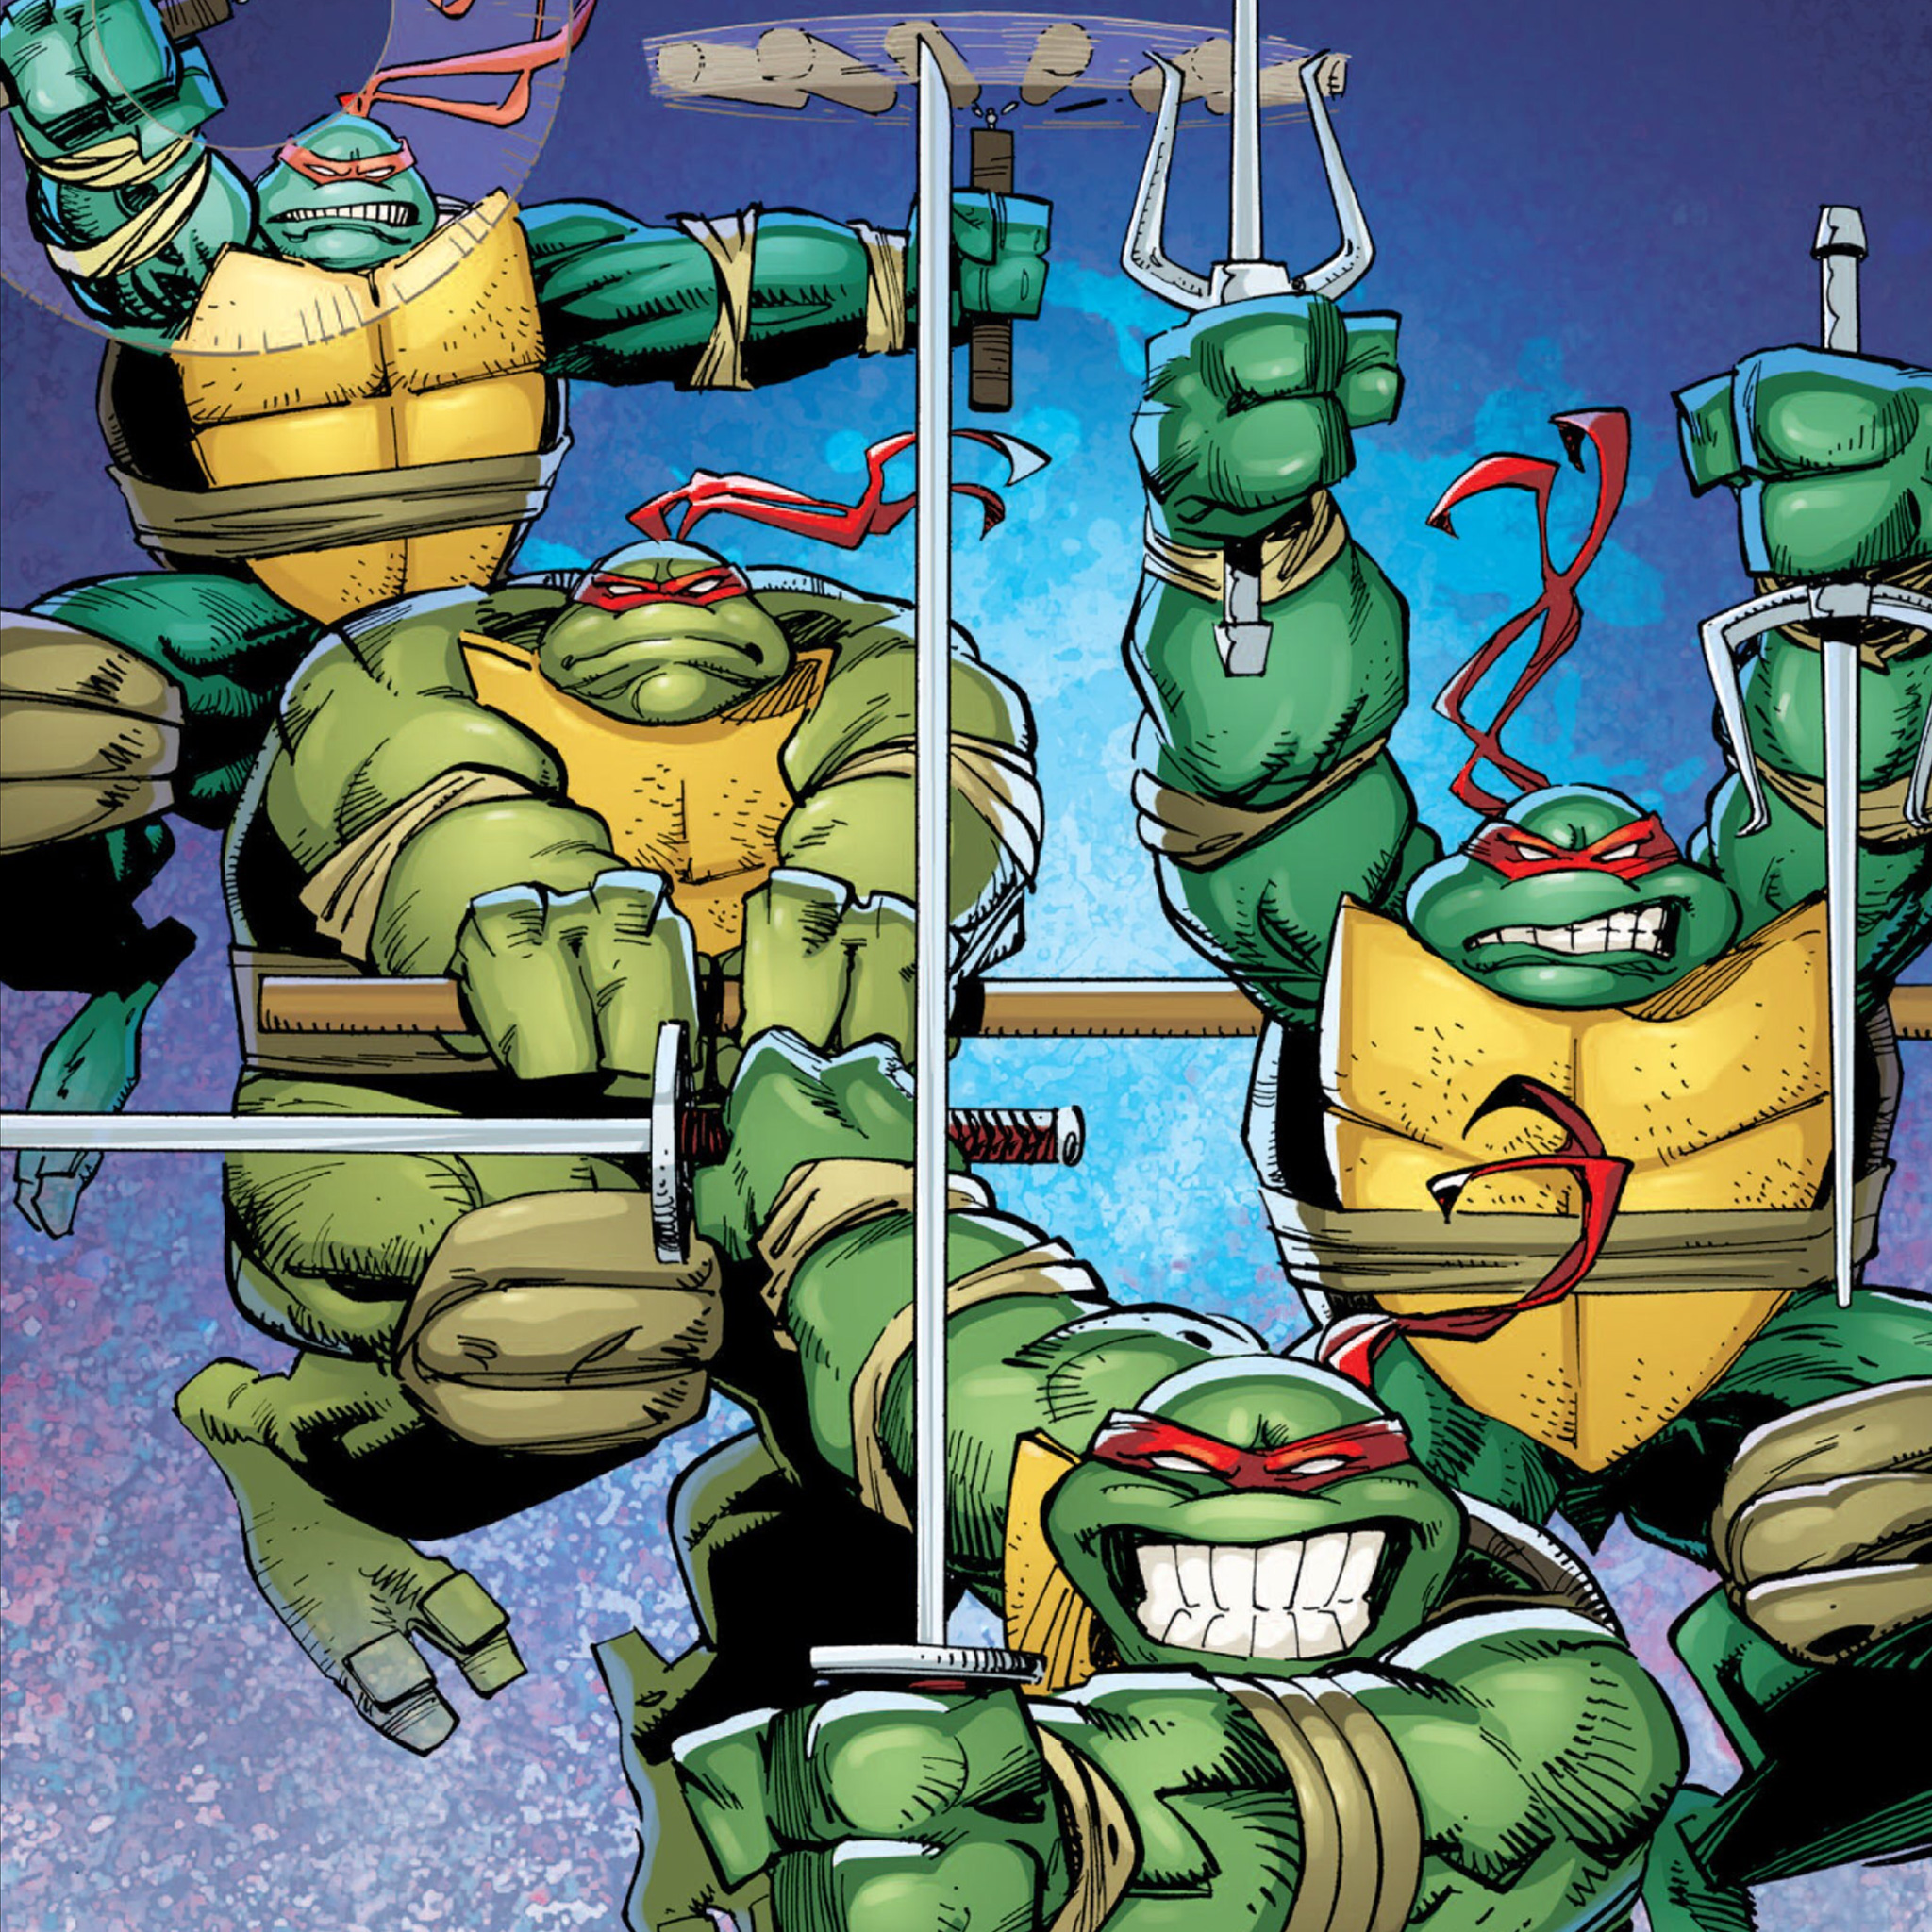 Ninja Turtles Wallpaper: Teenage-mutant-ninja-turtles-idw-comic-ipad-wallpaper